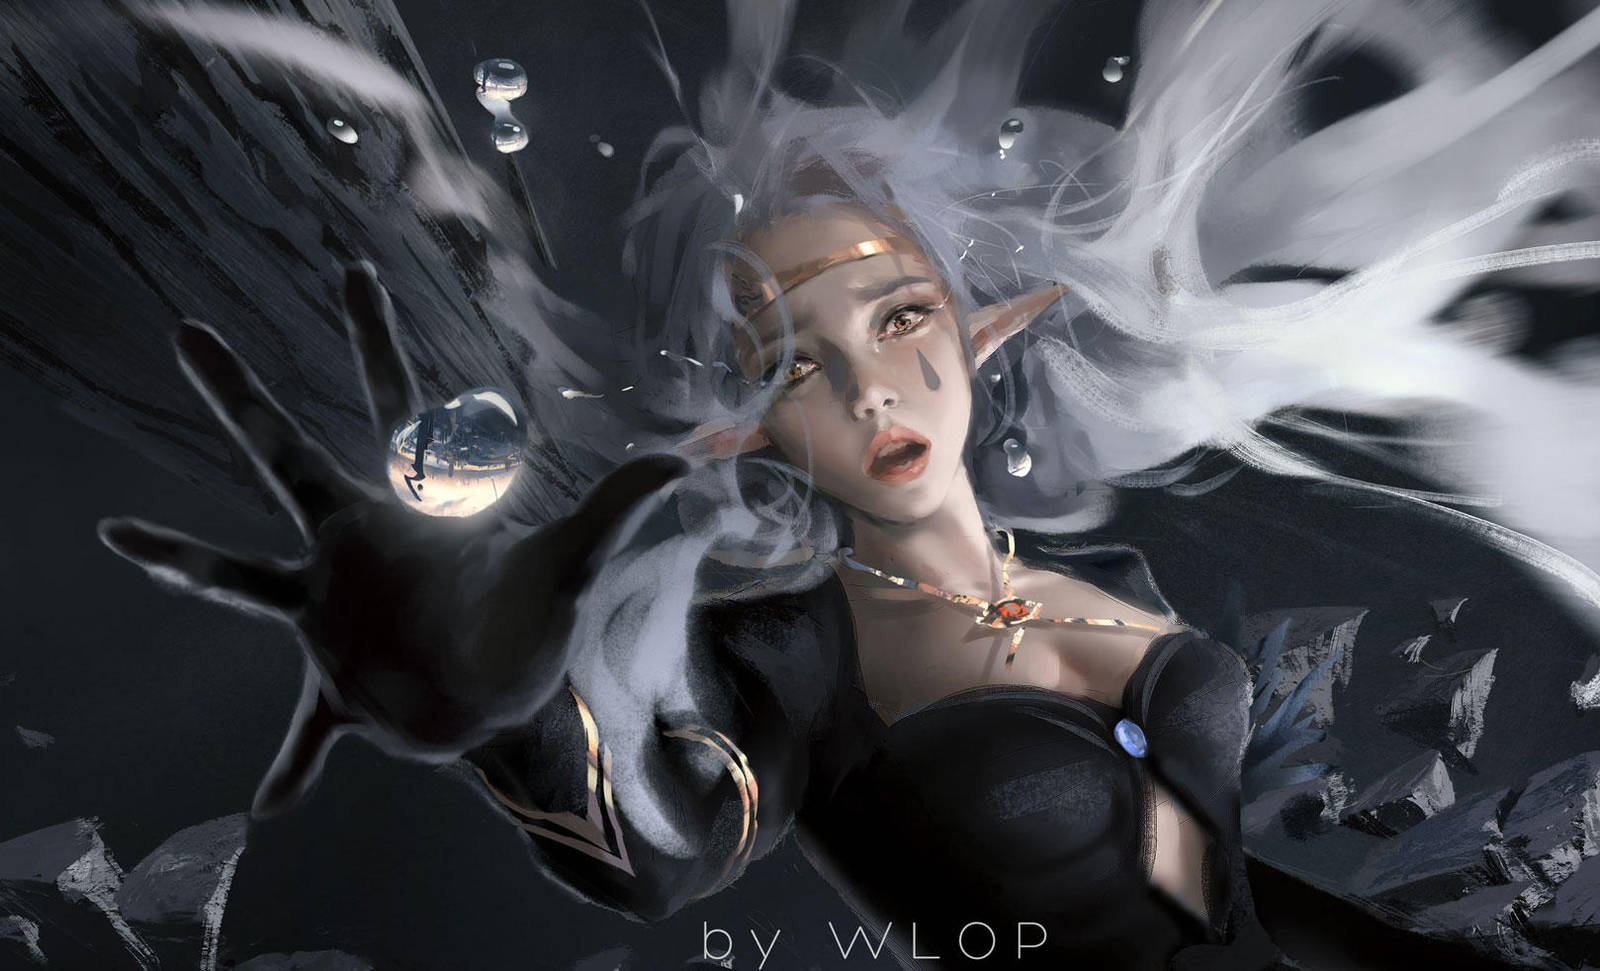 Fall by wlop